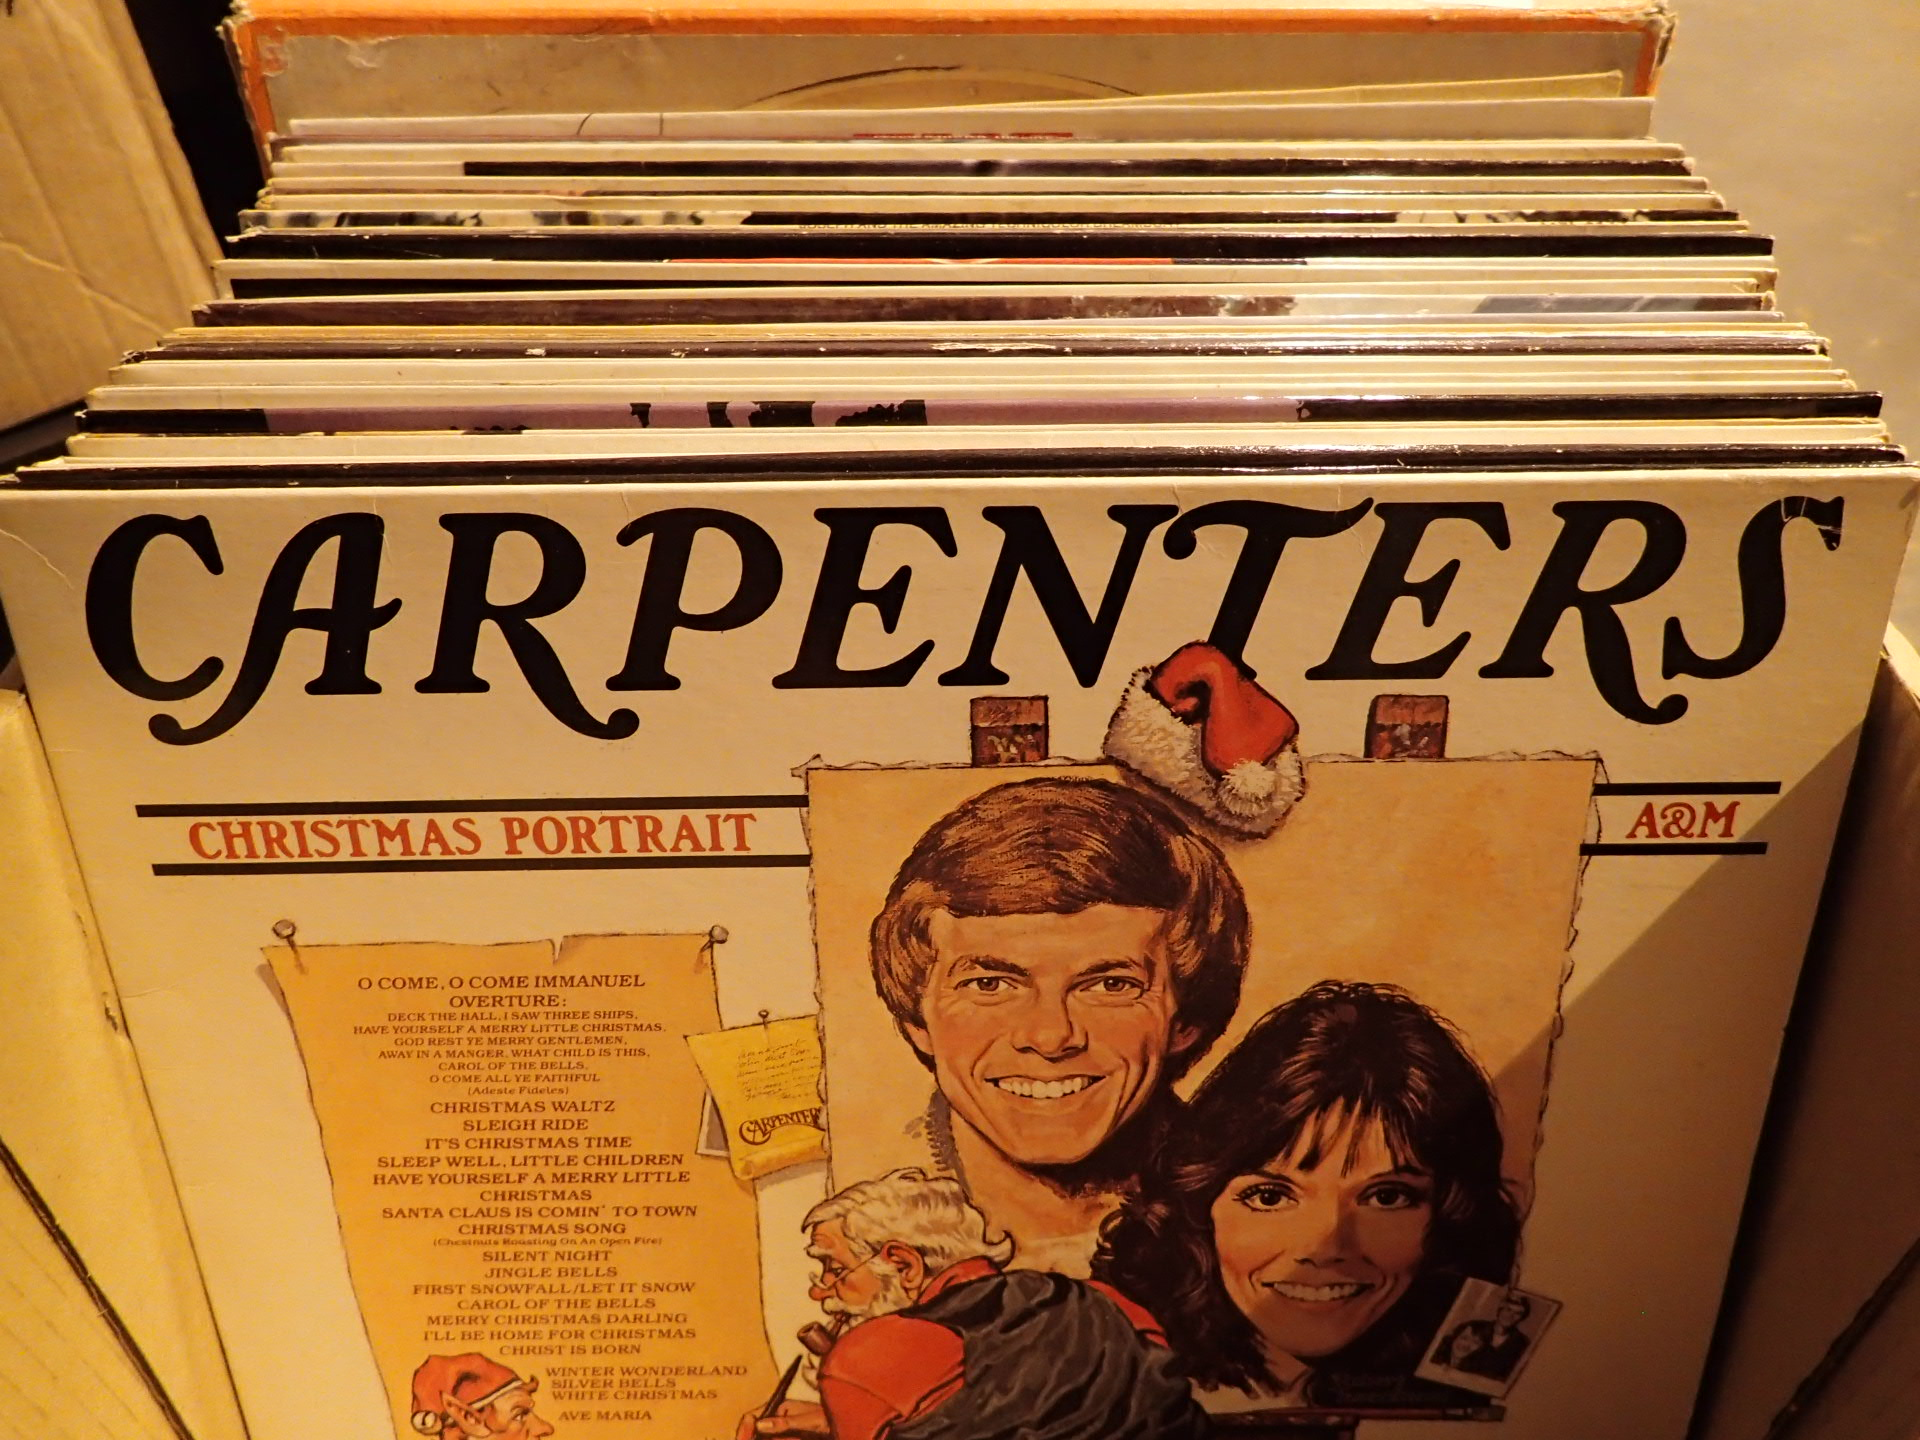 Lot 1623 - Collection of mixed genre LPs including